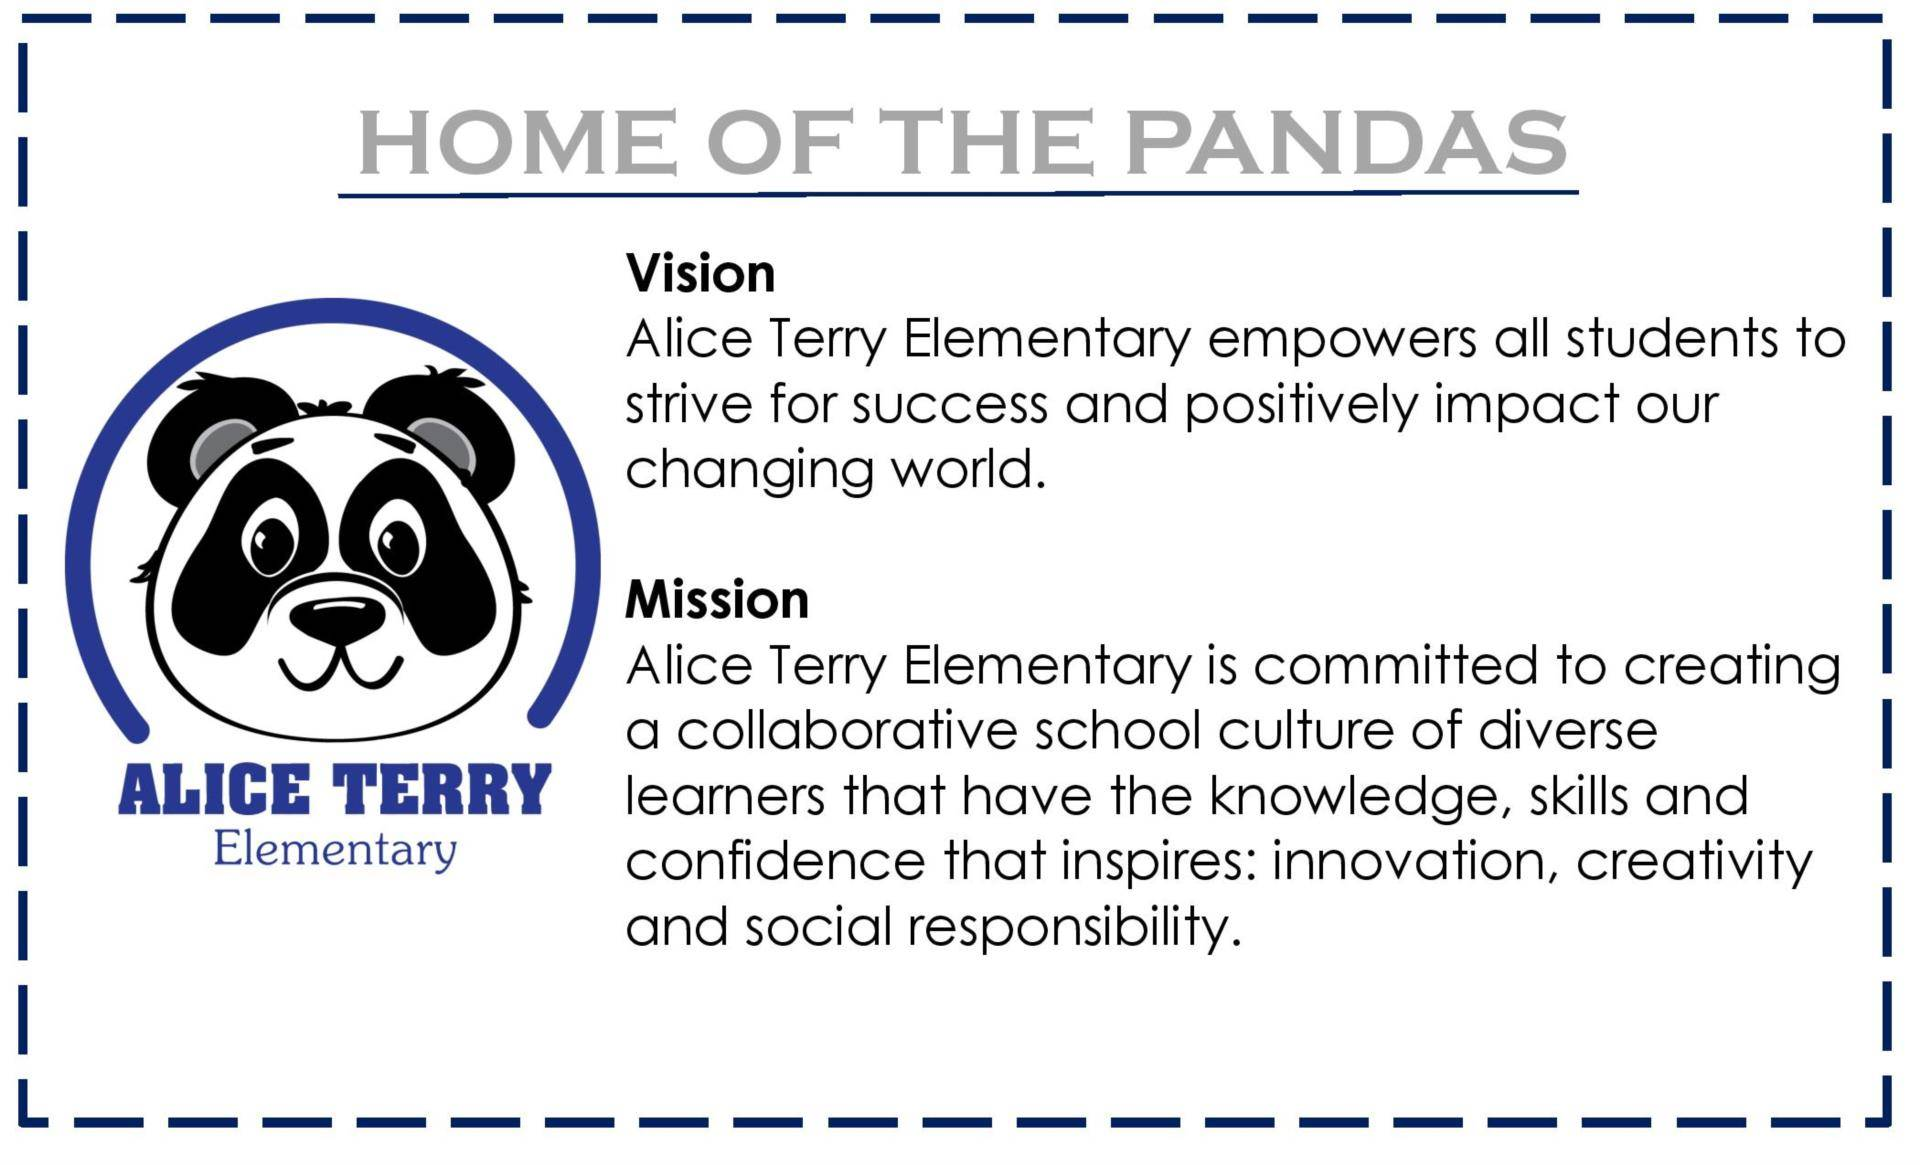 Vision and Mission of School